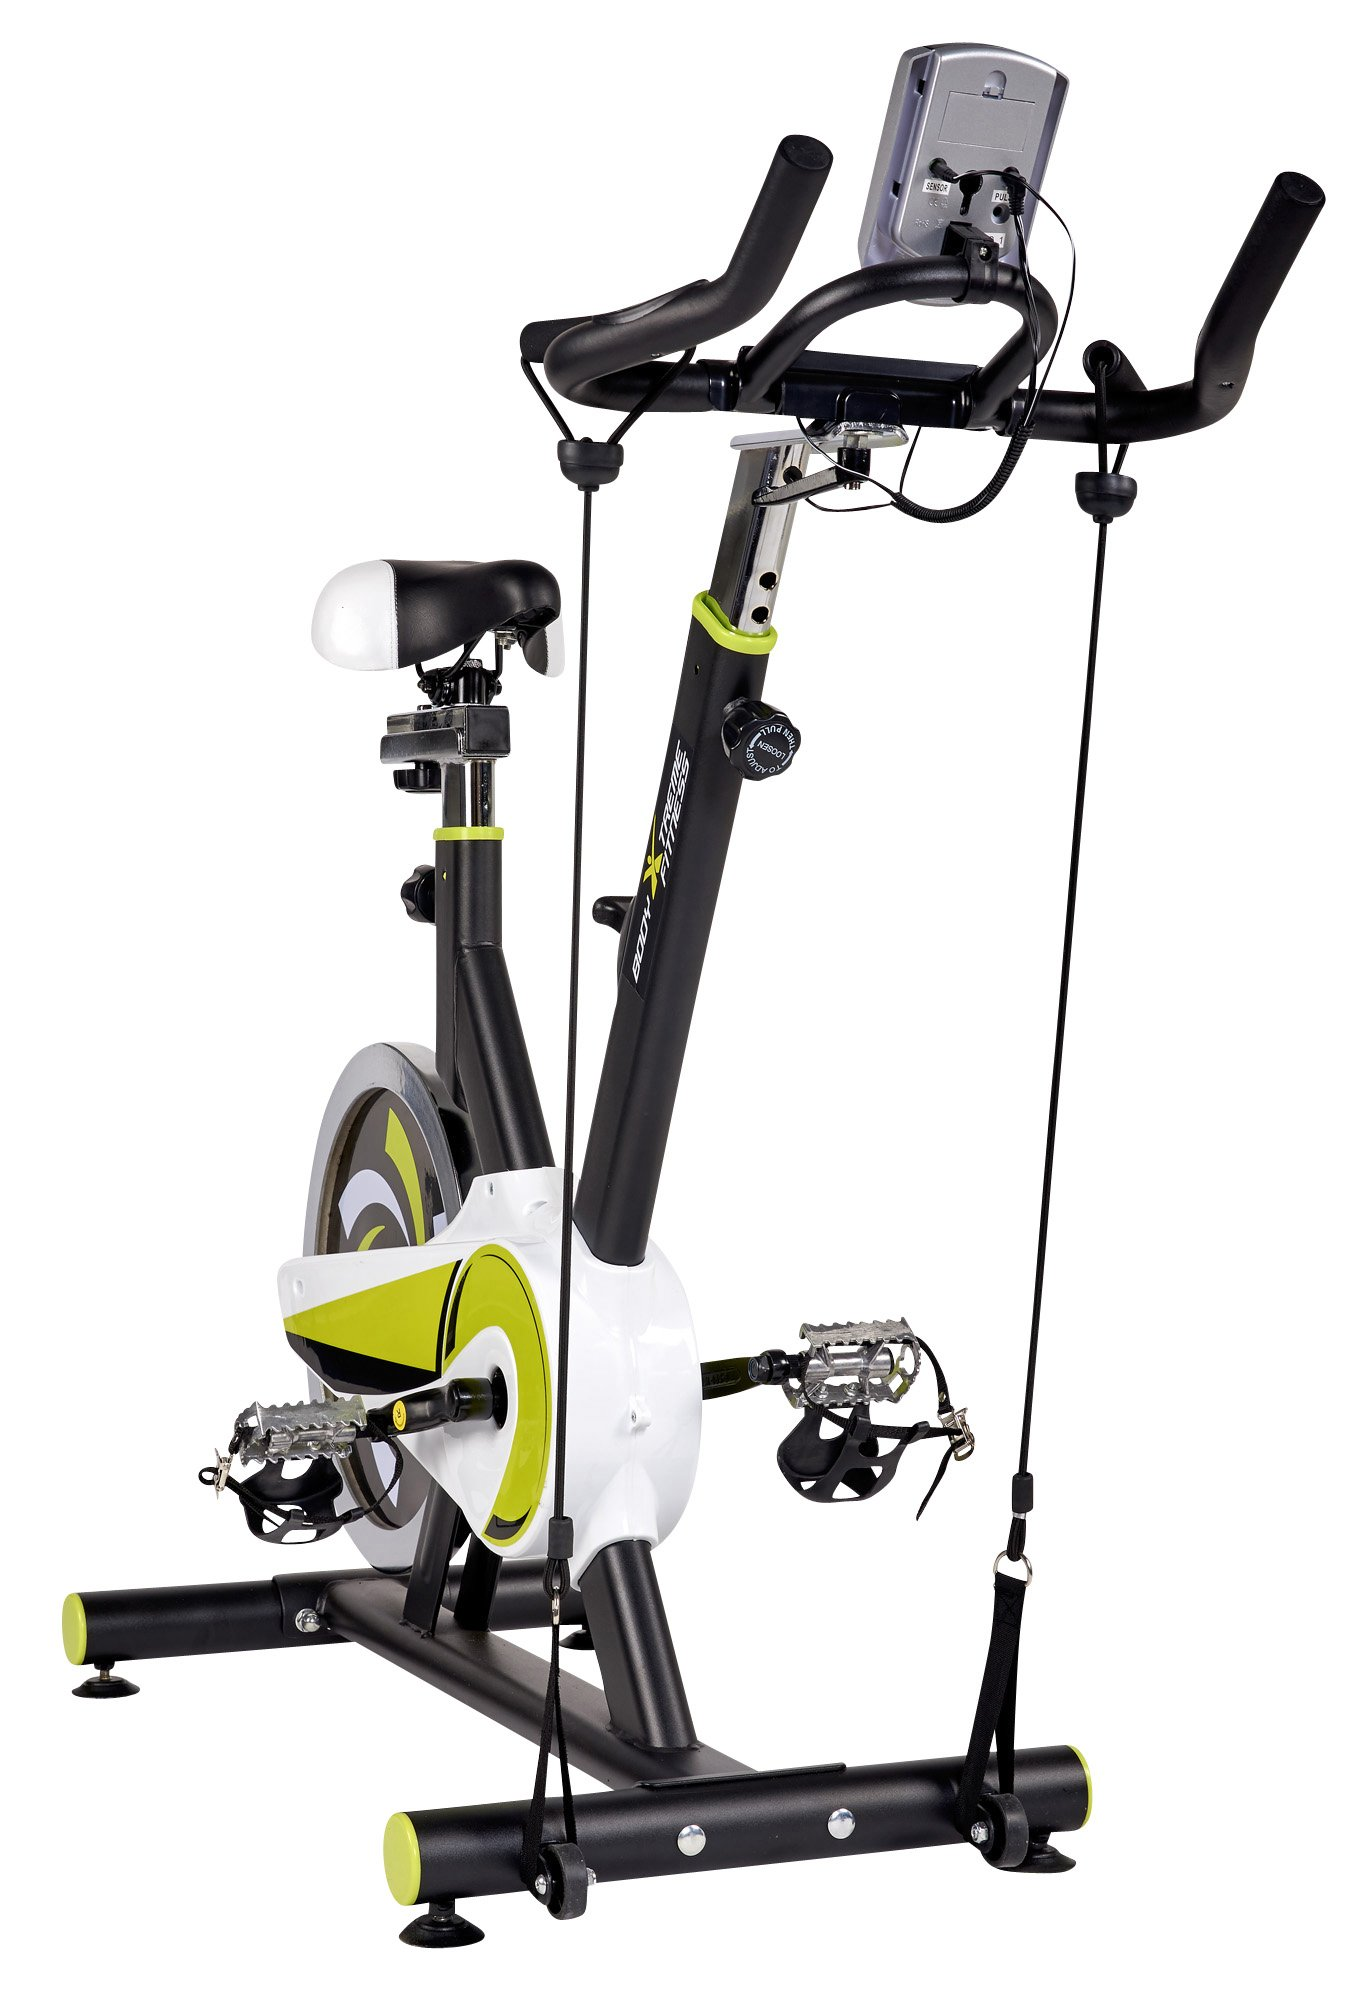 Body Xtreme Fitness Lime Green/Black Exercise Bike, Home Gym Equipment, 40lb Flywheel, Resistance Bands, Water Bottle + BONUS COOLING TOWEL by Body Xtreme Fitness USA (Image #5)